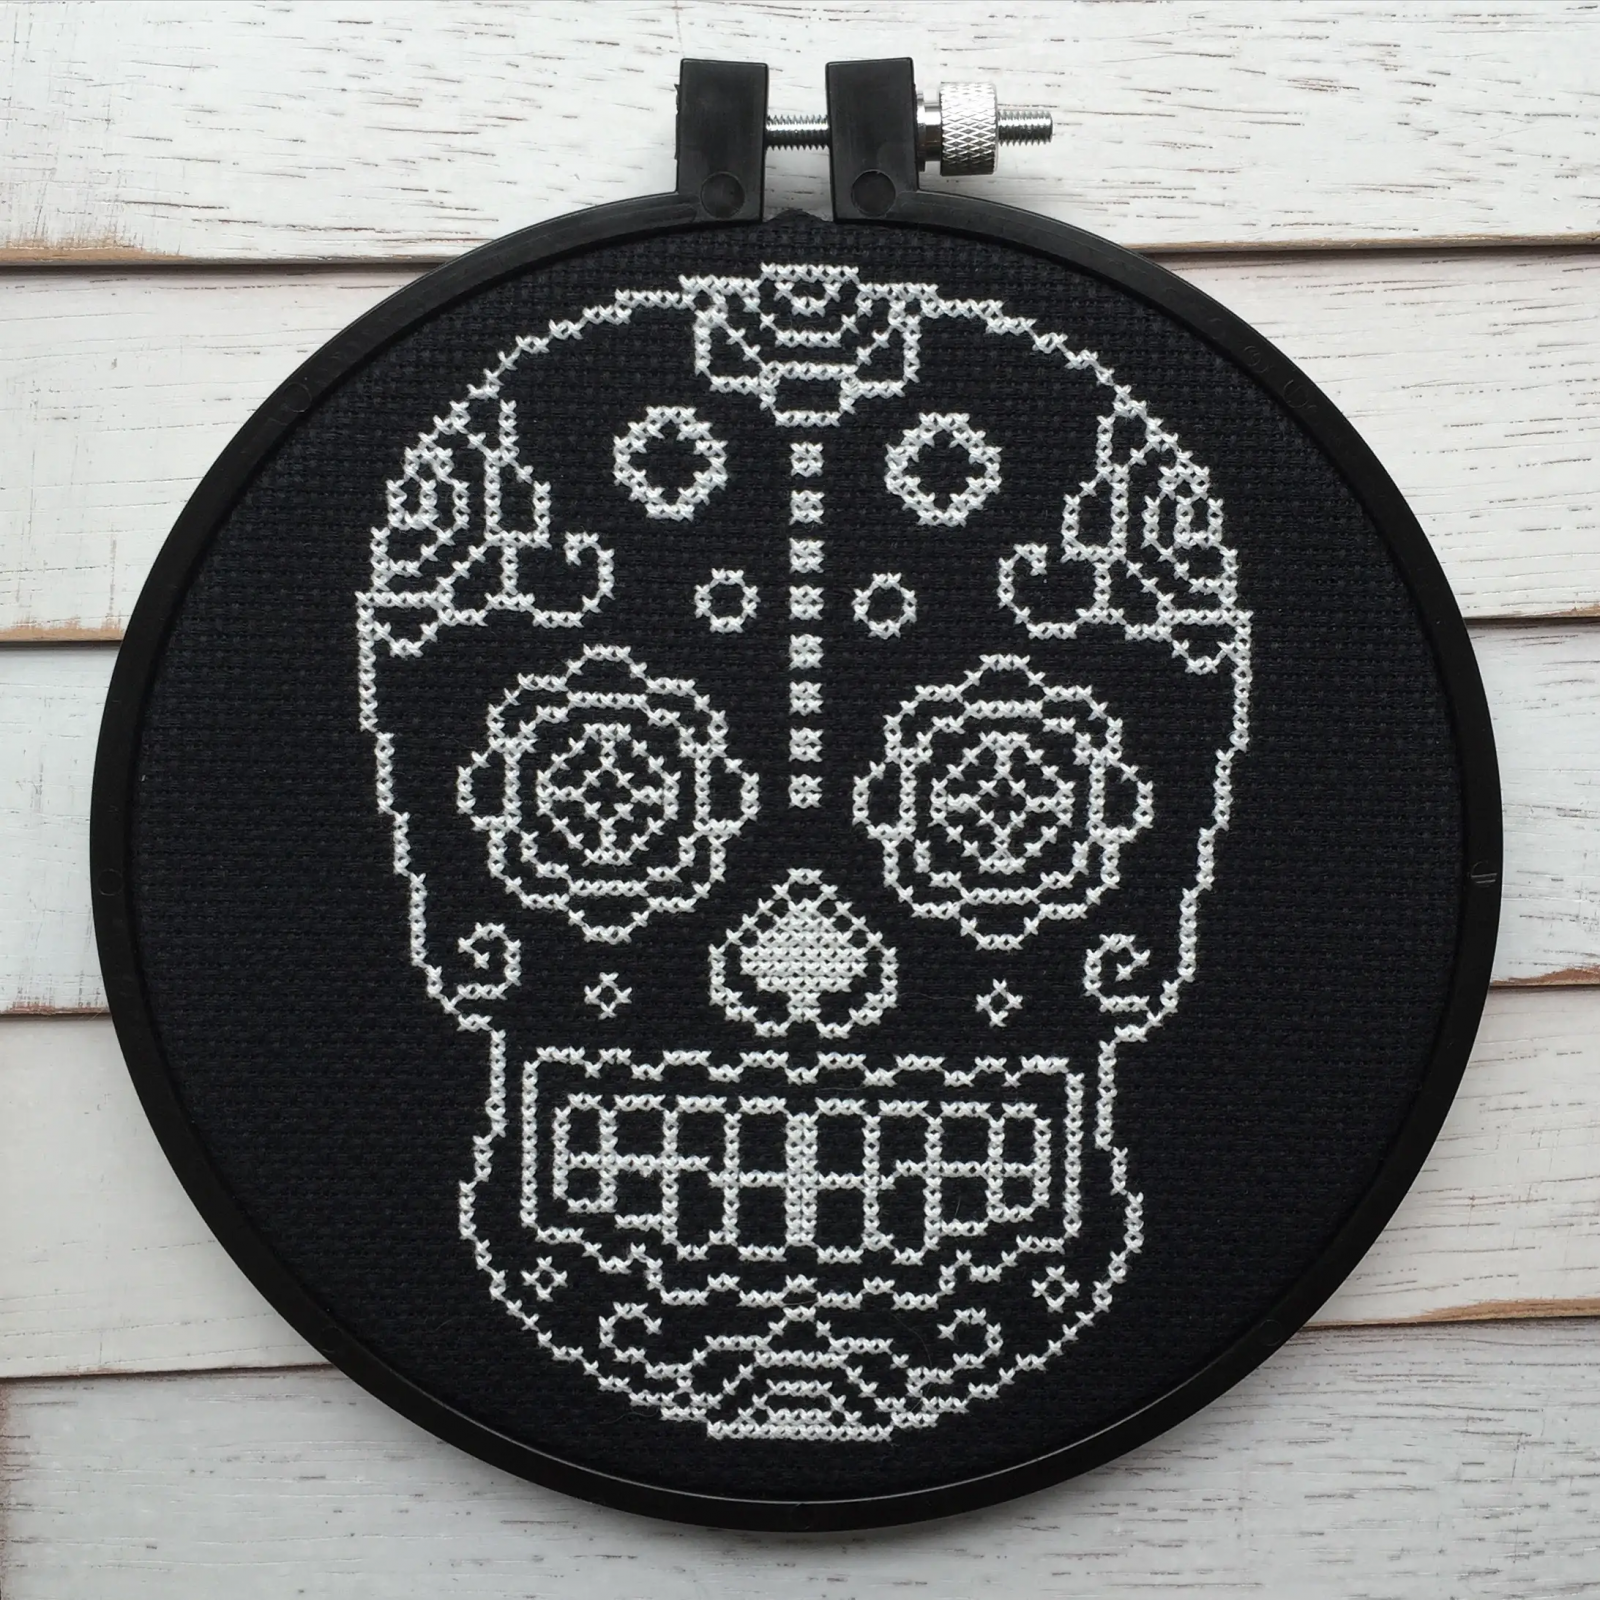 Blk & Wht Sugar Skull Stitch Kit